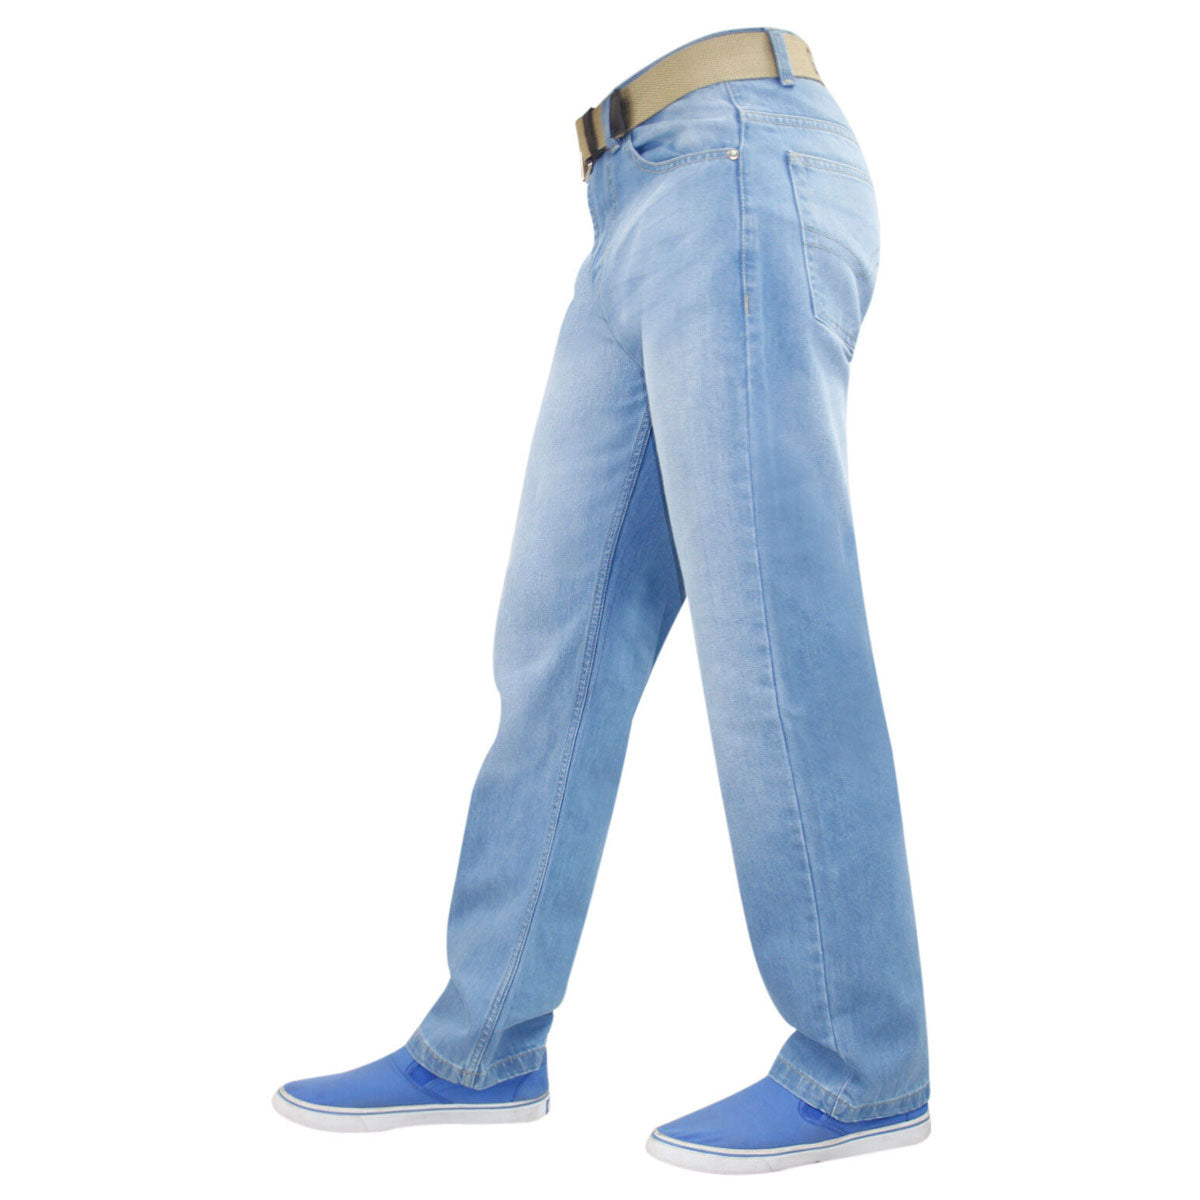 Gaffer Men Straight Leg Jeans Light Blue